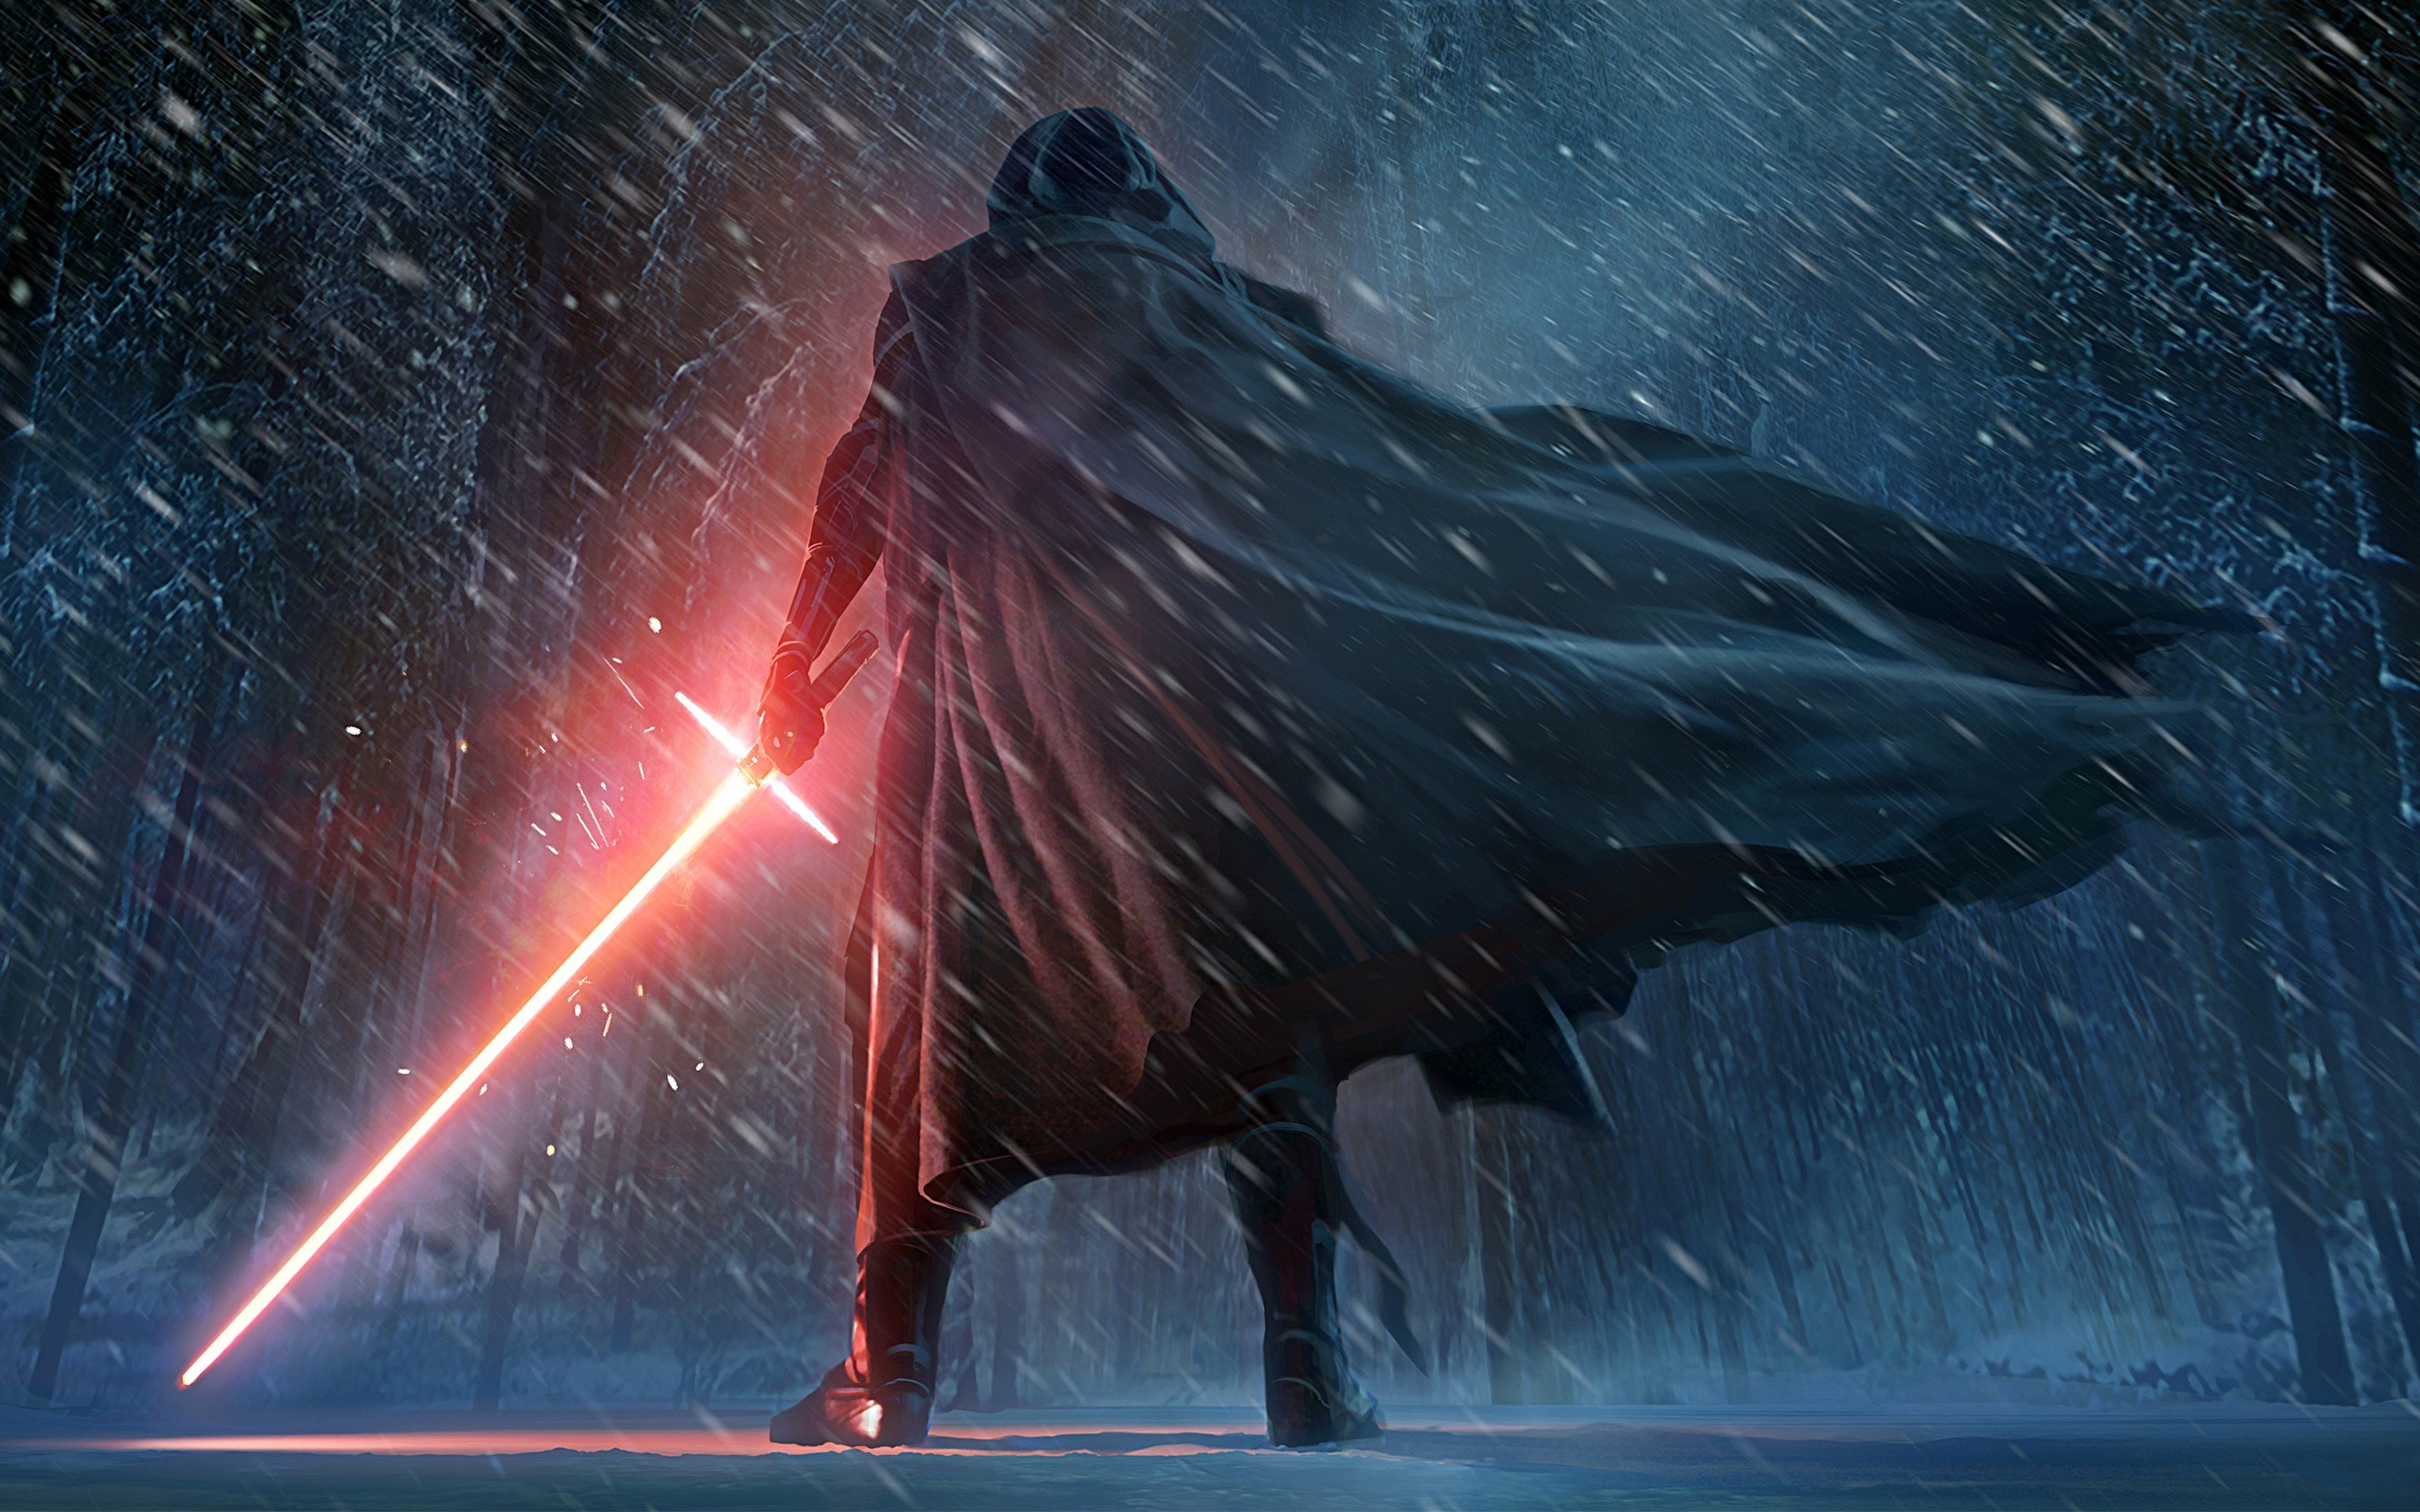 Star Wars The Force Awakens Wallpaper: HD Lightsaber Wallpaper (72+ Images